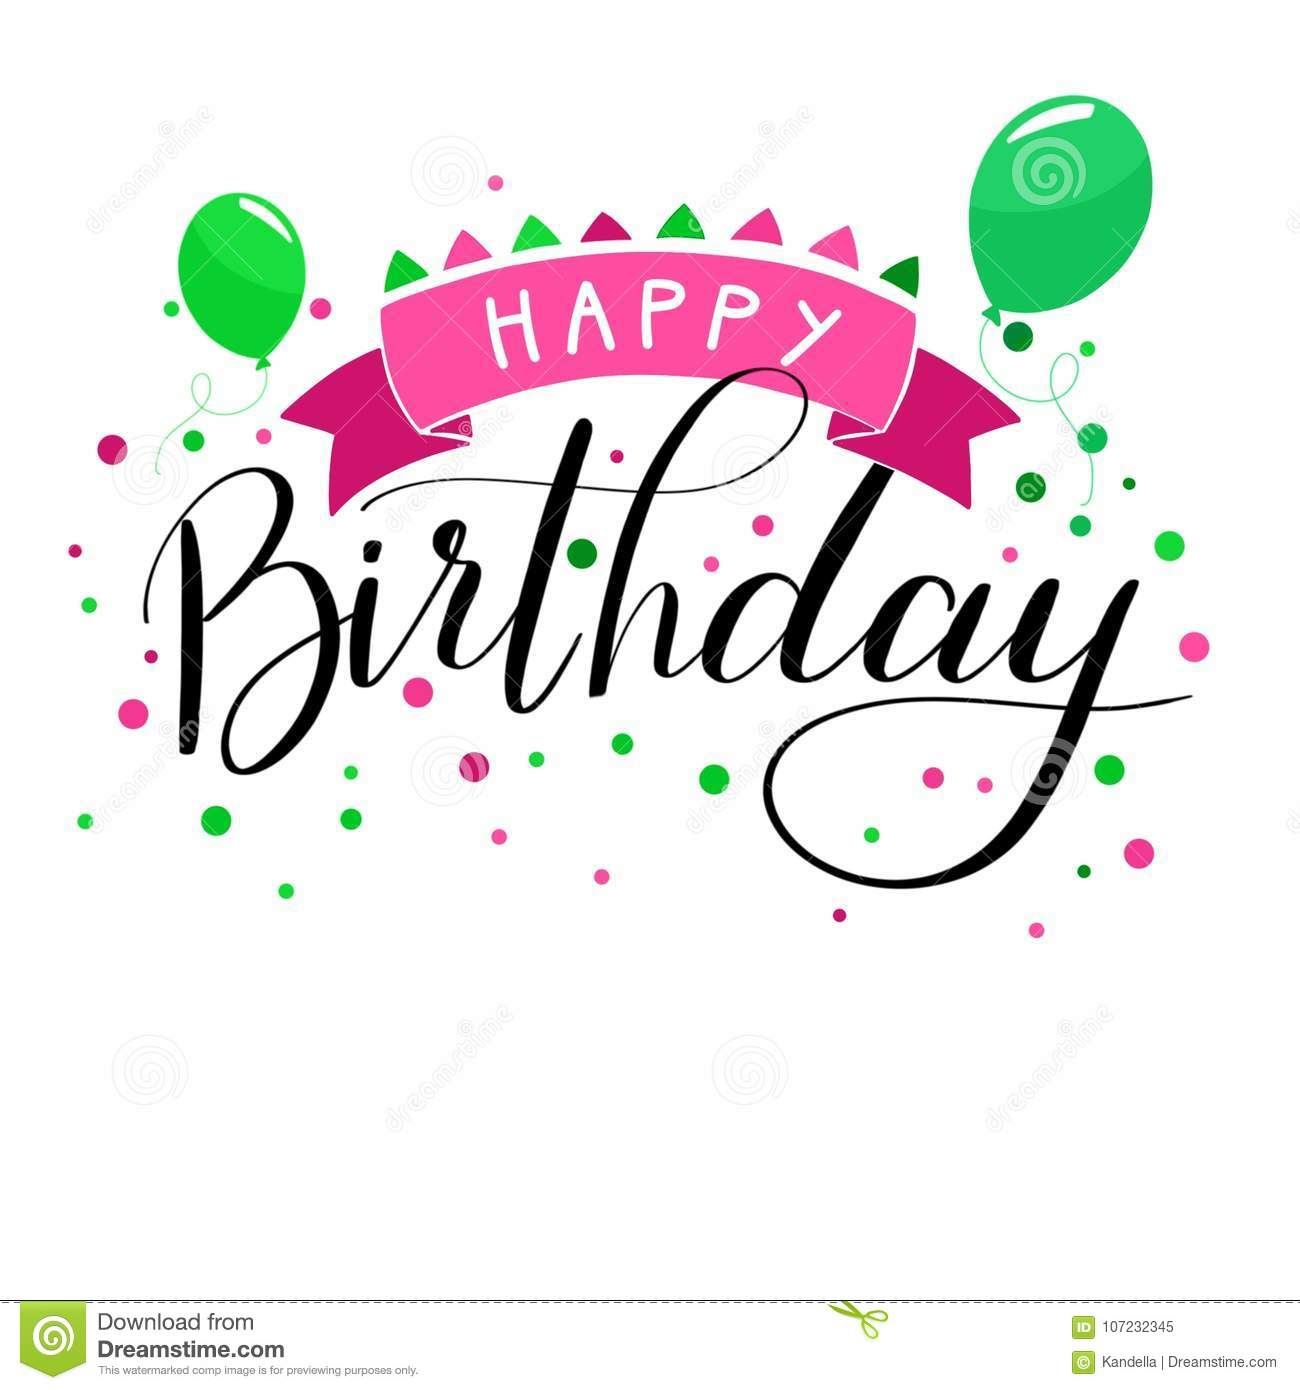 Happy Birthday Hand Written Pink Green Lettering Stock Vector Illustration Of Card White 107232345